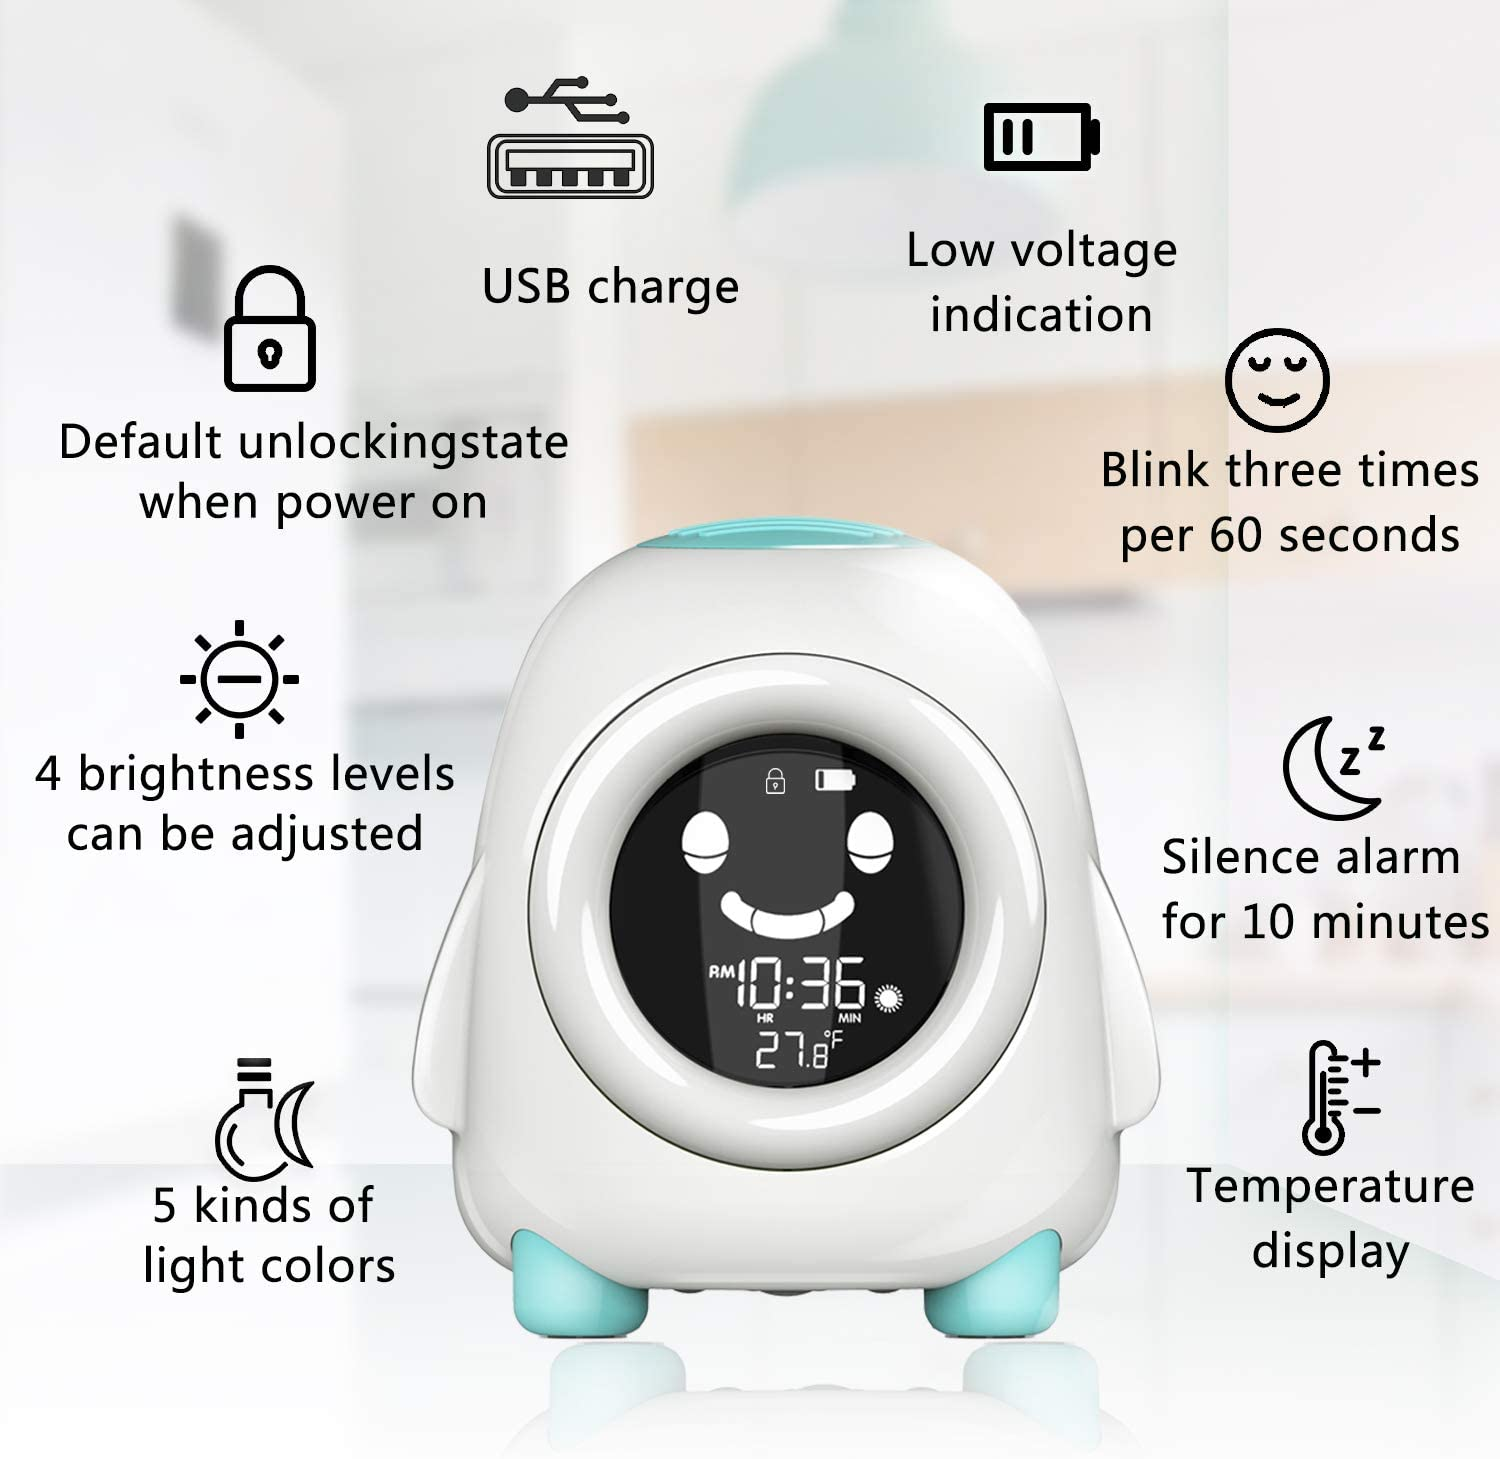 Geevon Ready to Rise Childrens Trainer Kids Room Clock 5 Colors Changing for Boys Girls Bedroom Temperature Calendar Music